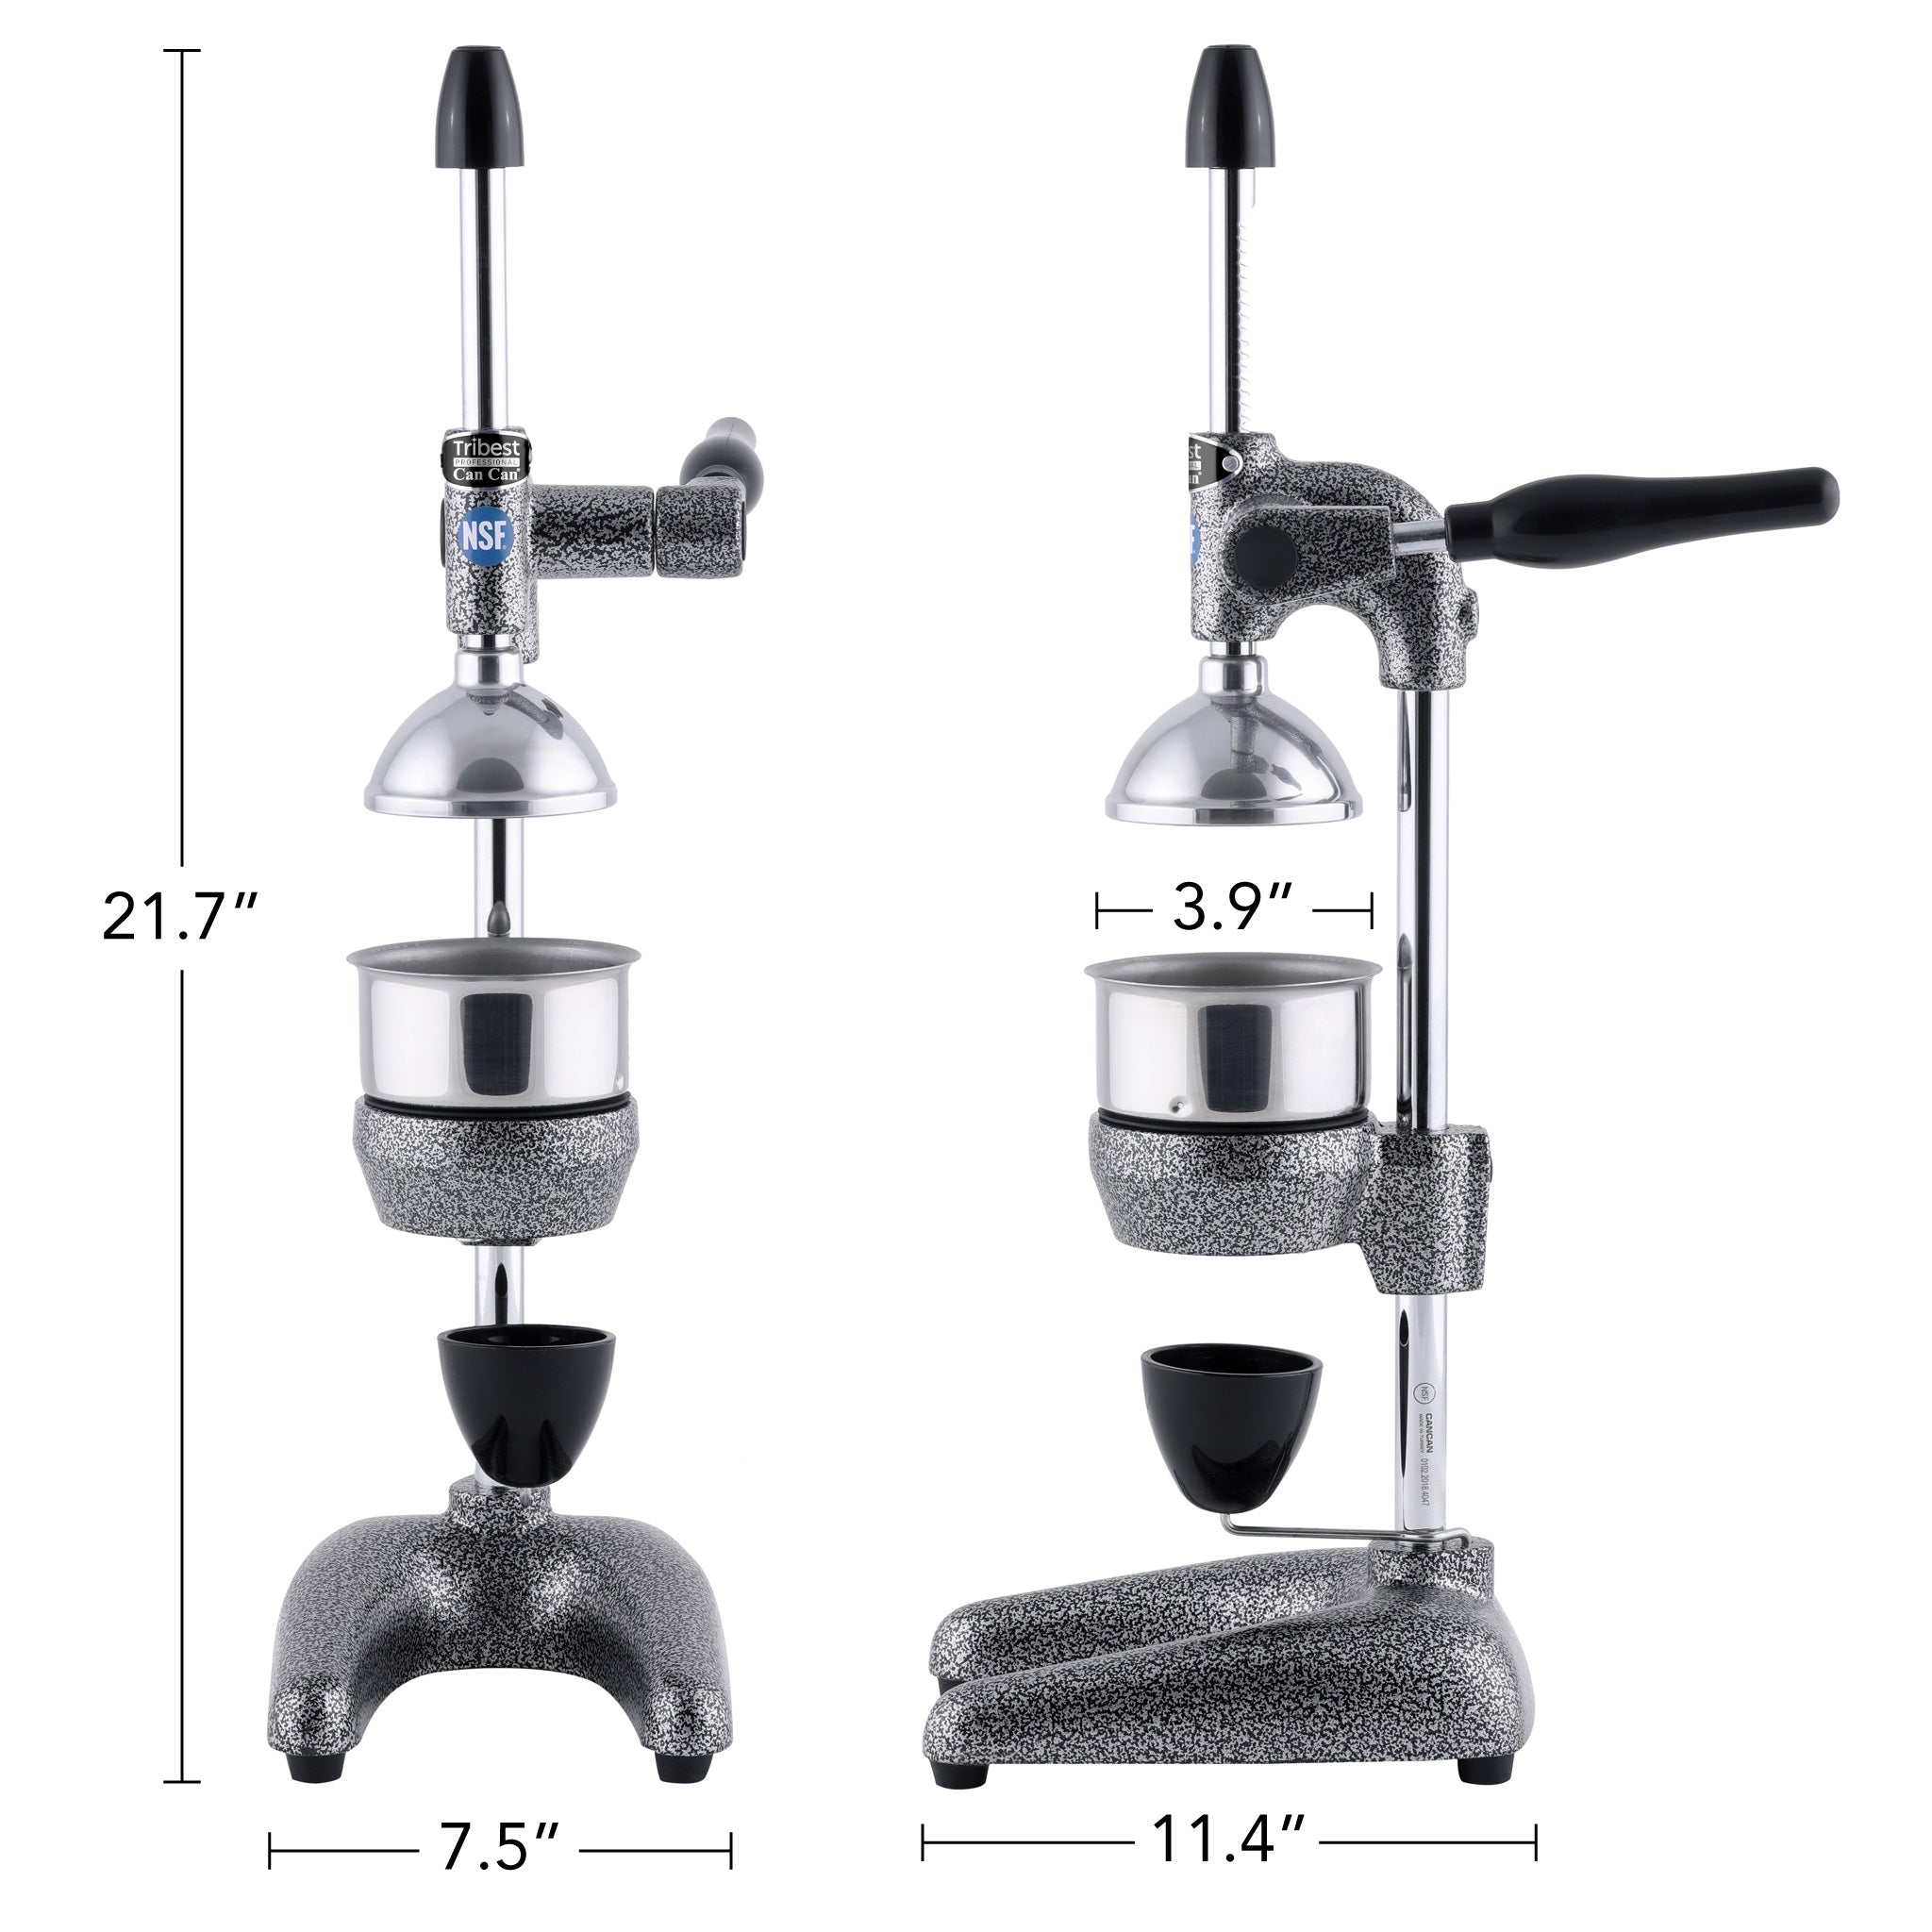 Tribest Professional Cancan Manual Juice Press MJP-100 21.7